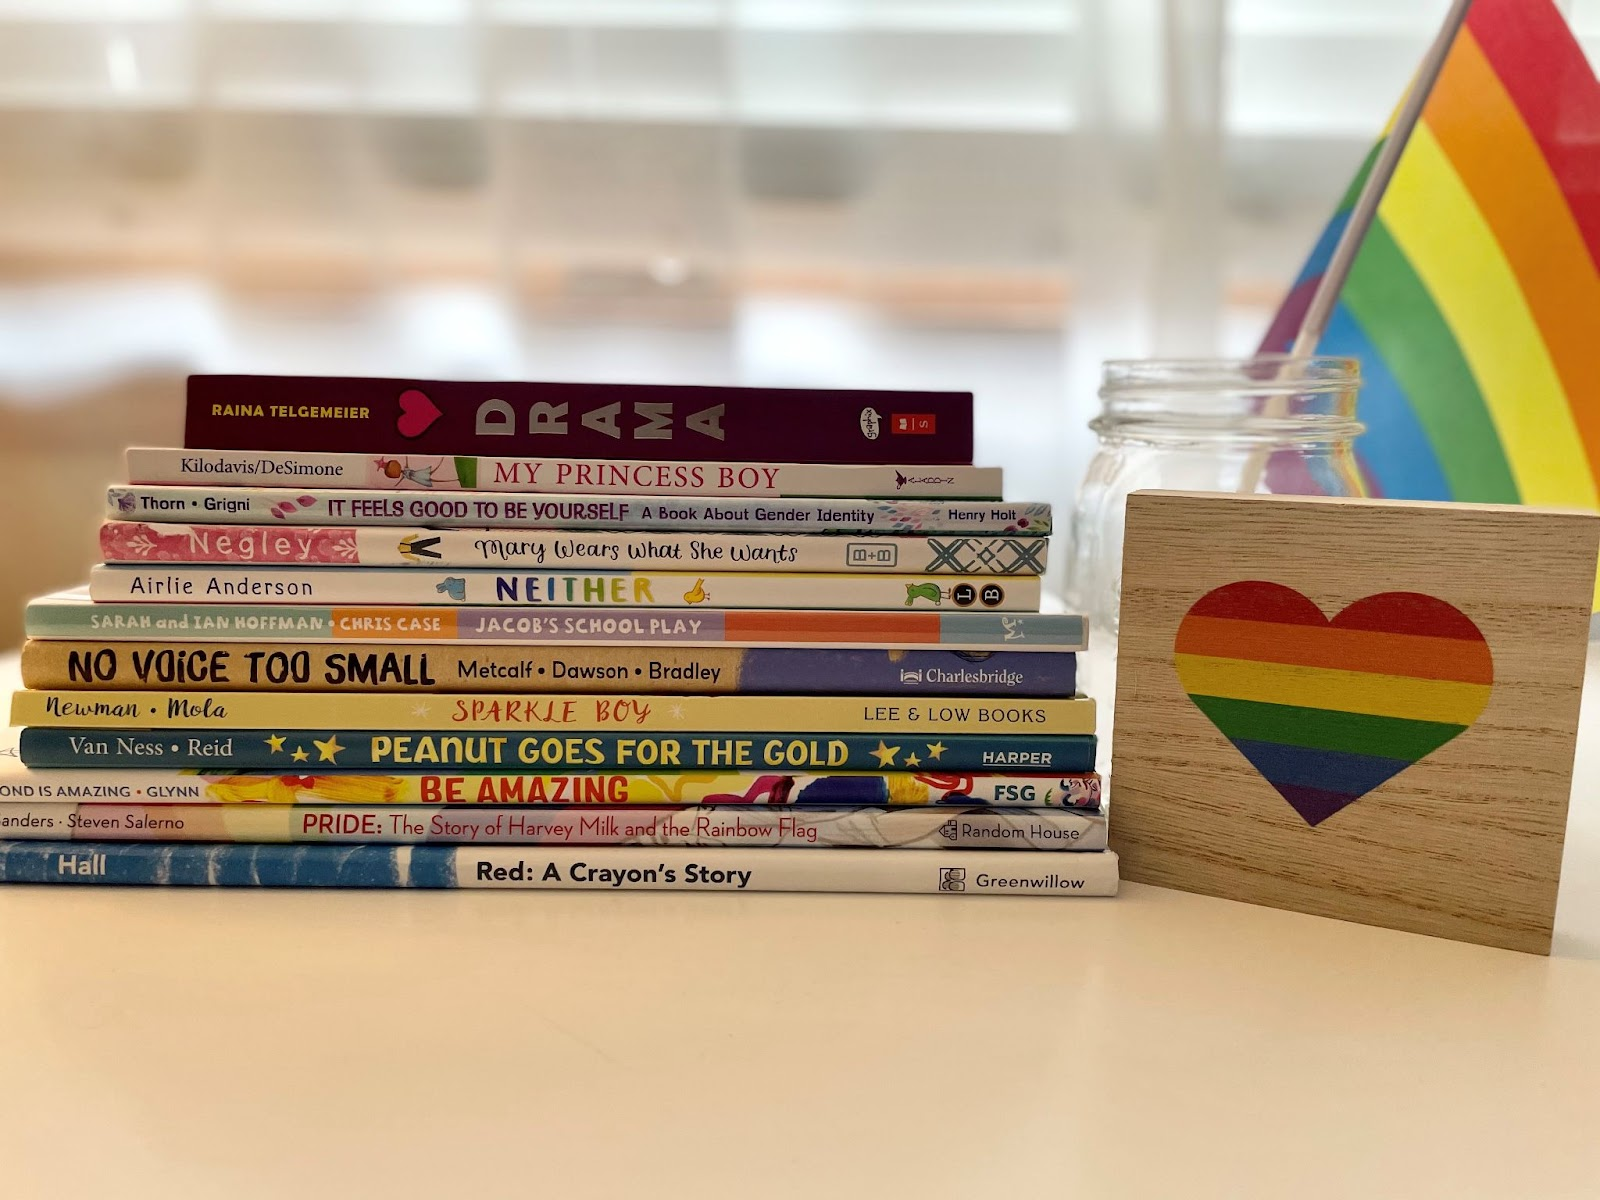 Stack of children's books with LGBTQ+ characters. Rainbow flag on right side of image.